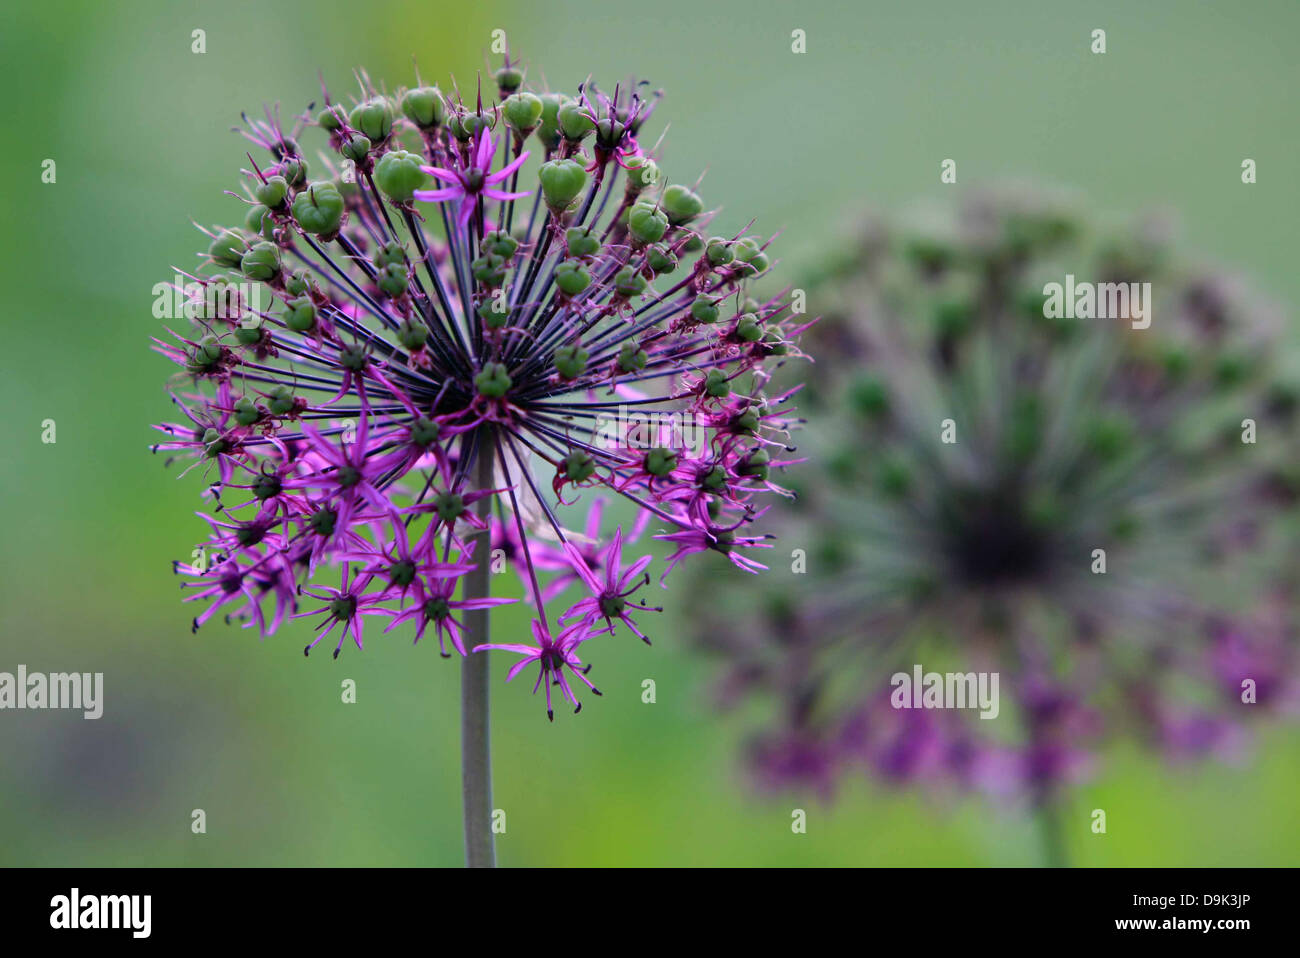 purple spiked flowers in green garden stem floral plant - Stock Image